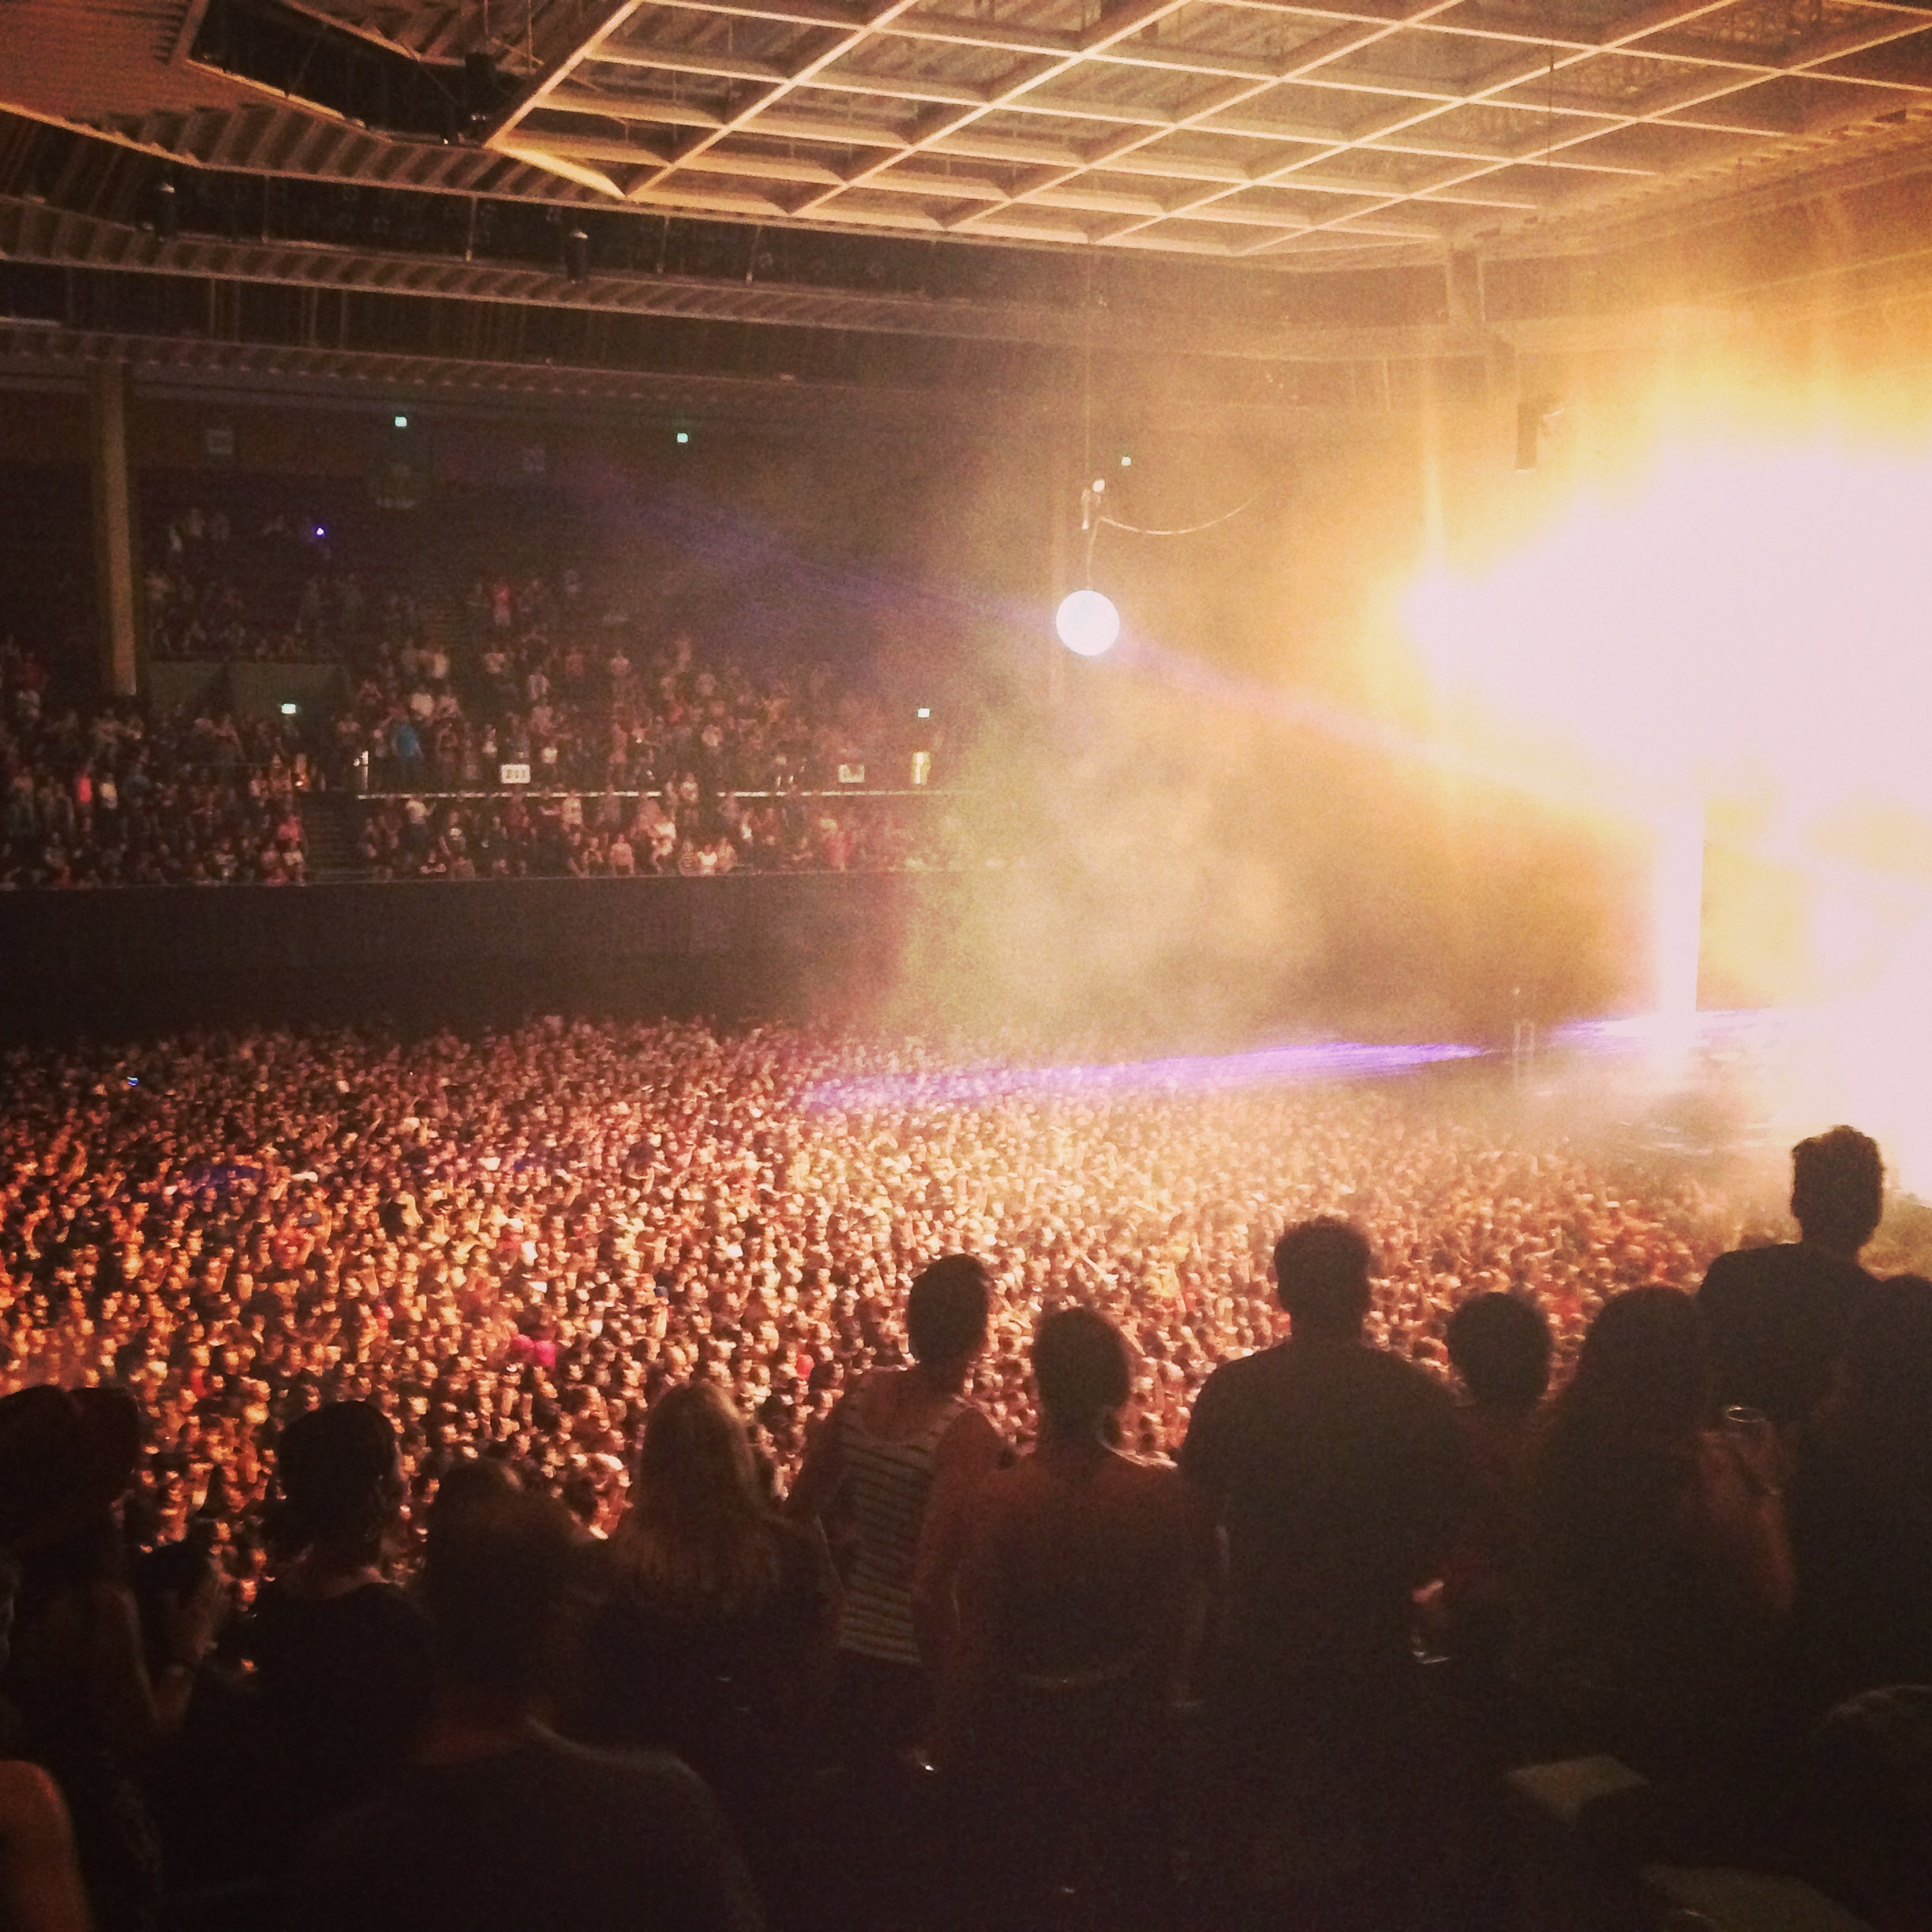 Concert Review: Robyn and Röyksopp - Midlife Mixtape